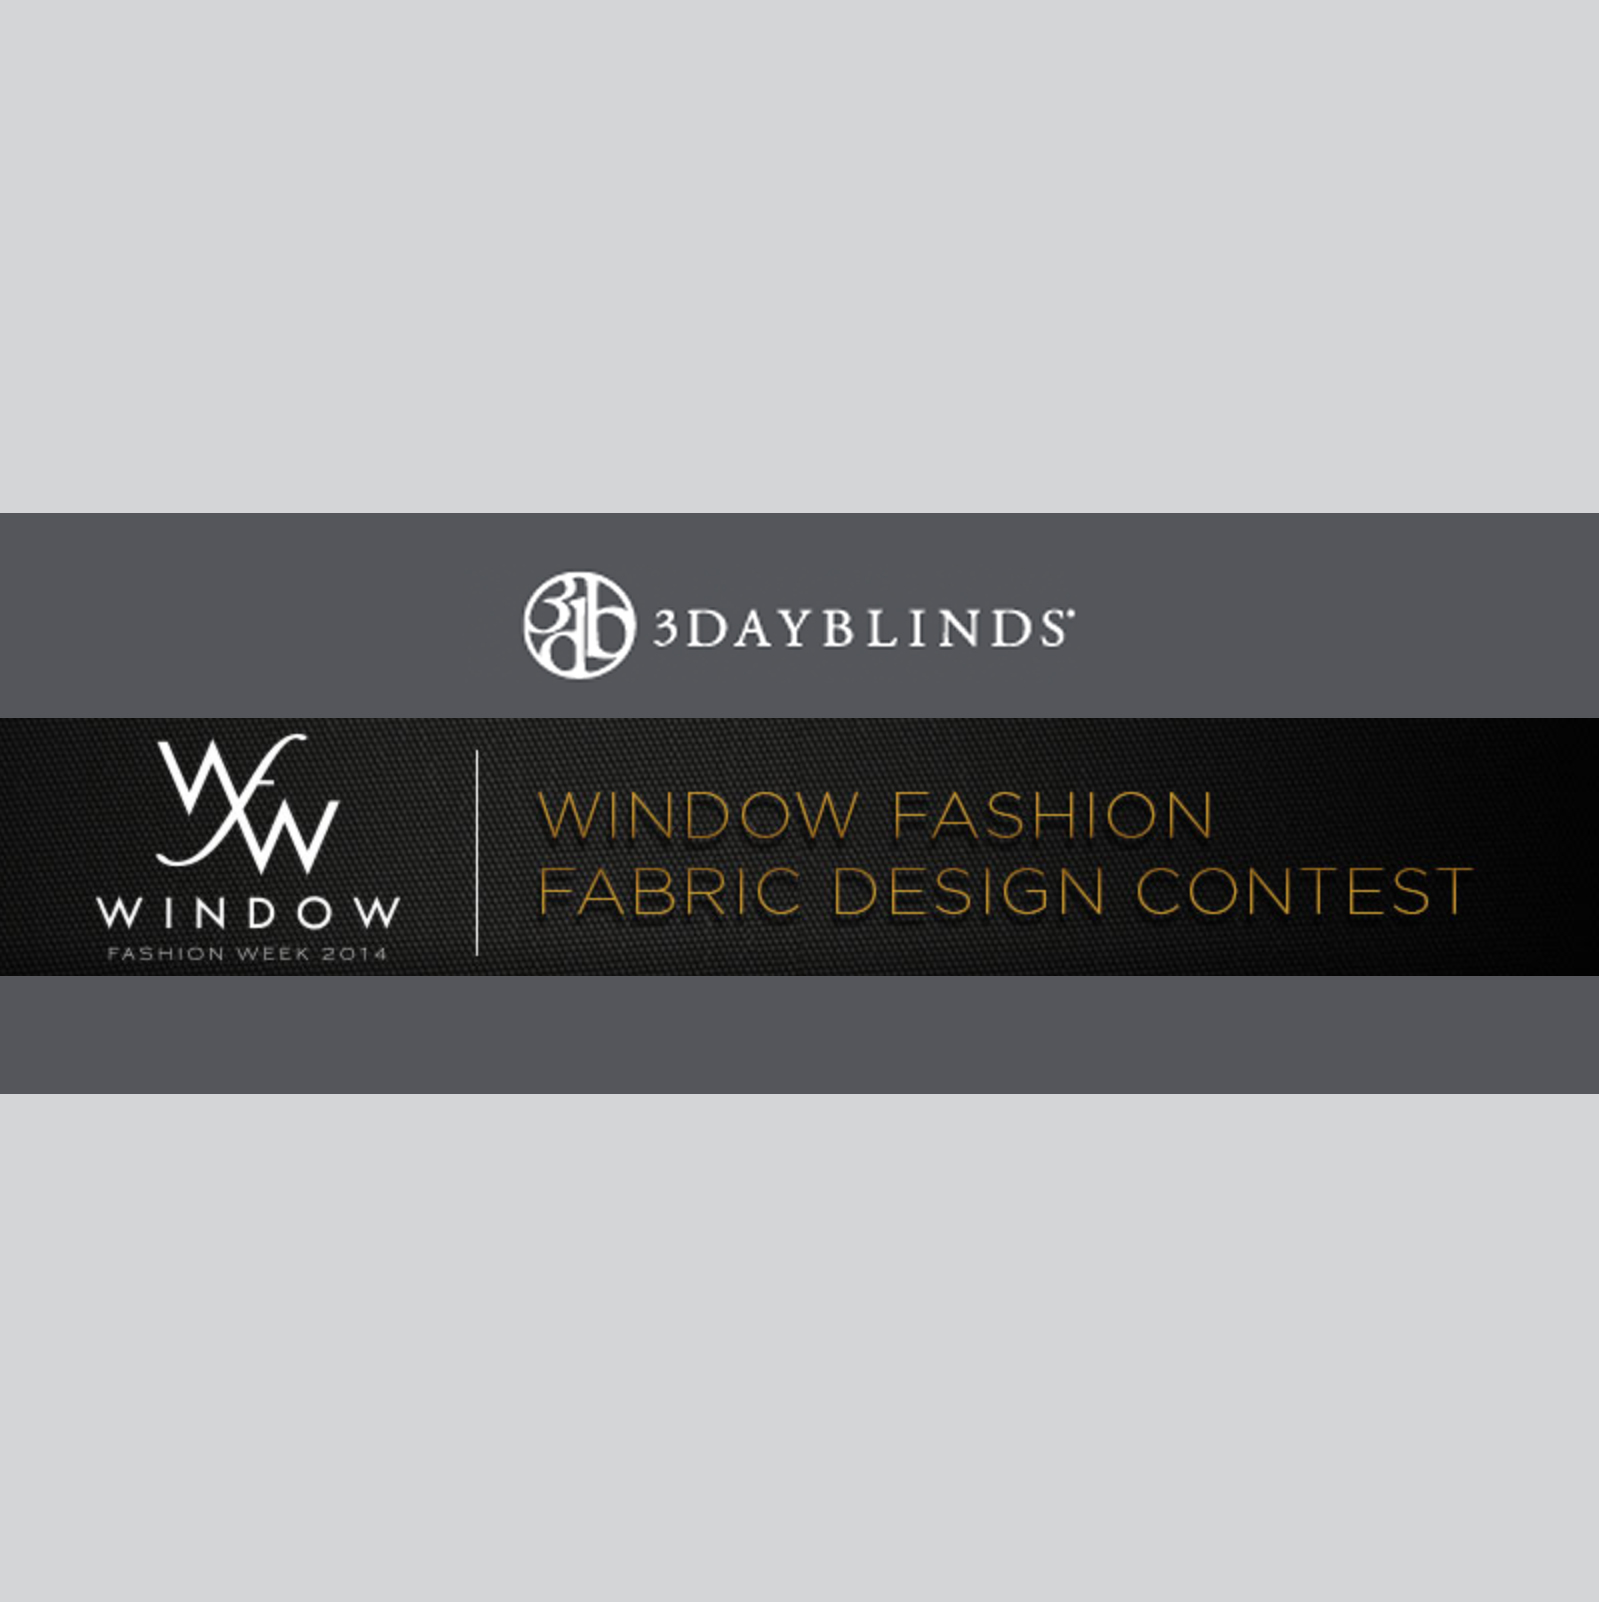 3Day Blinds Fabric Design Contest